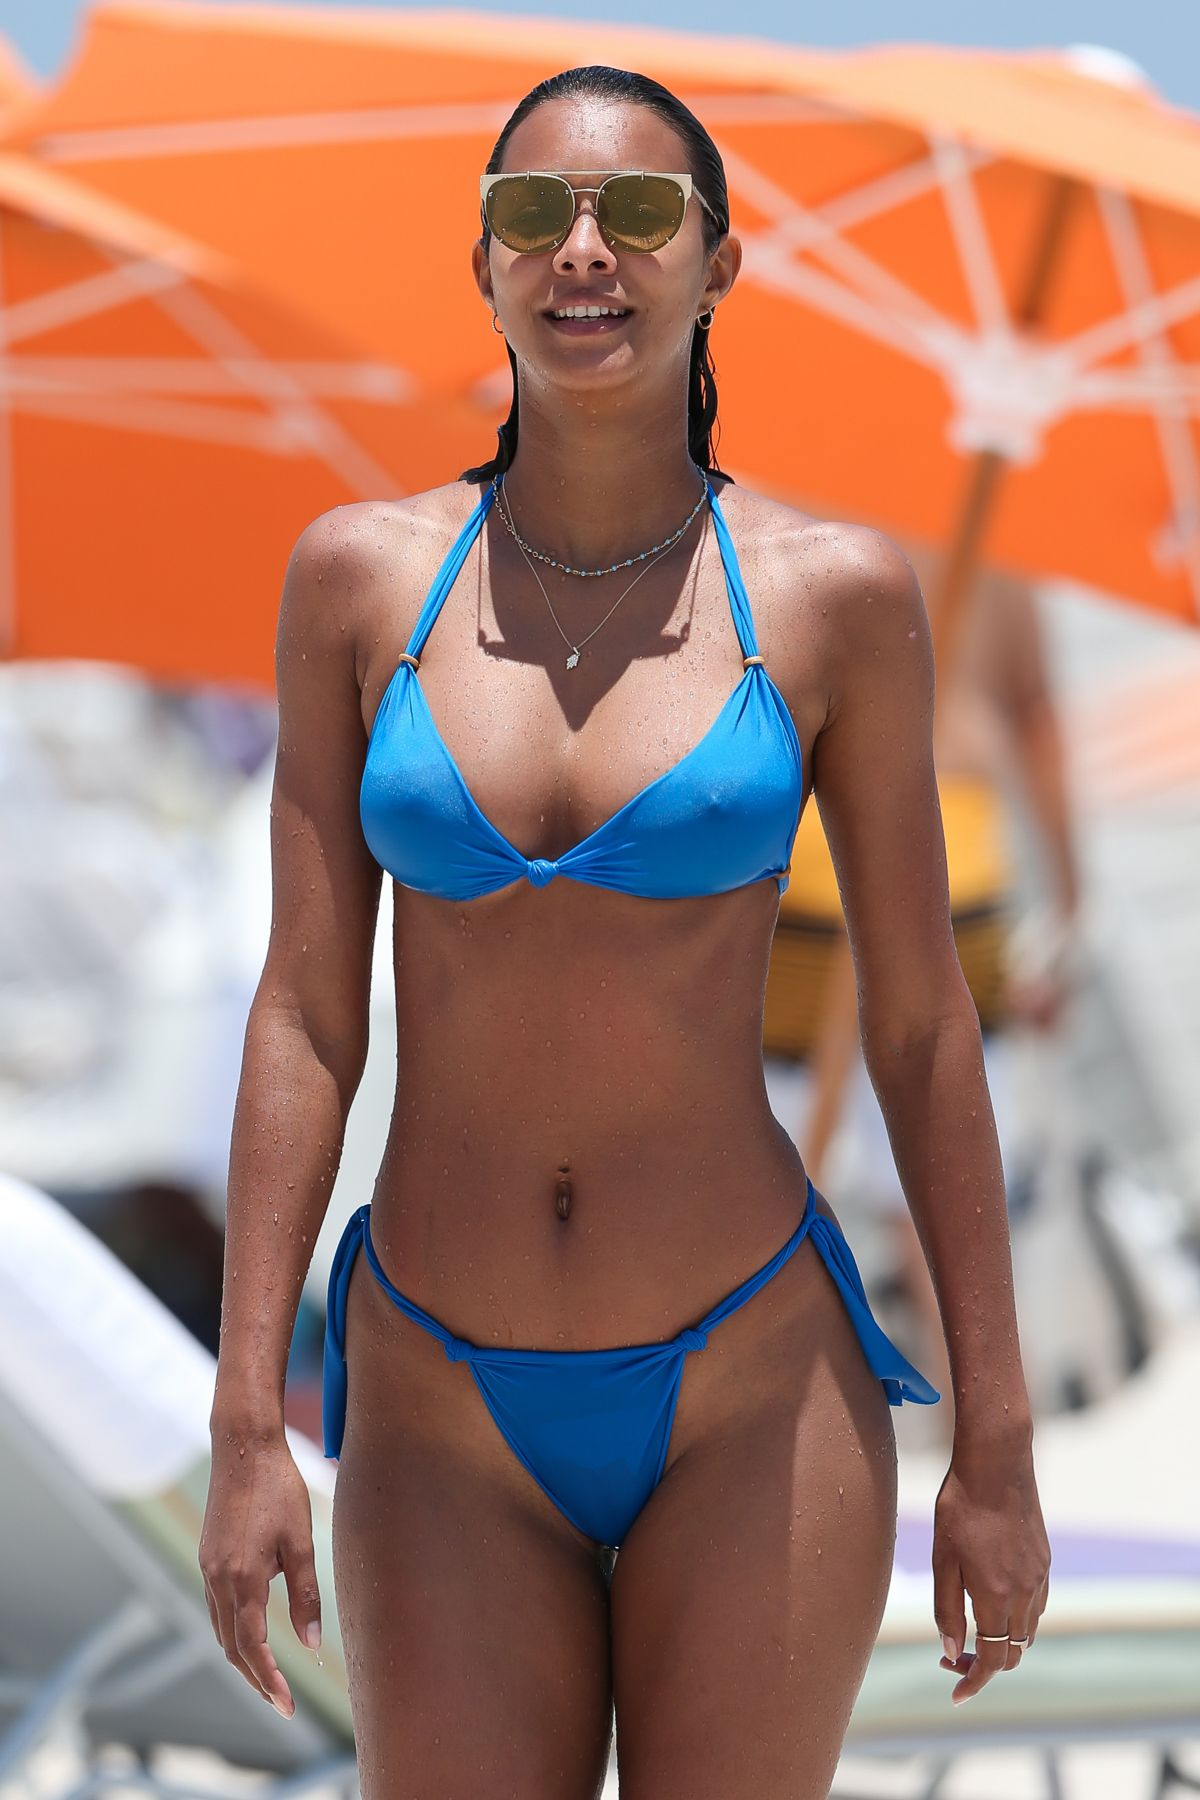 Lais Ribeiro Wears a tiny bikini on the beach in Miami